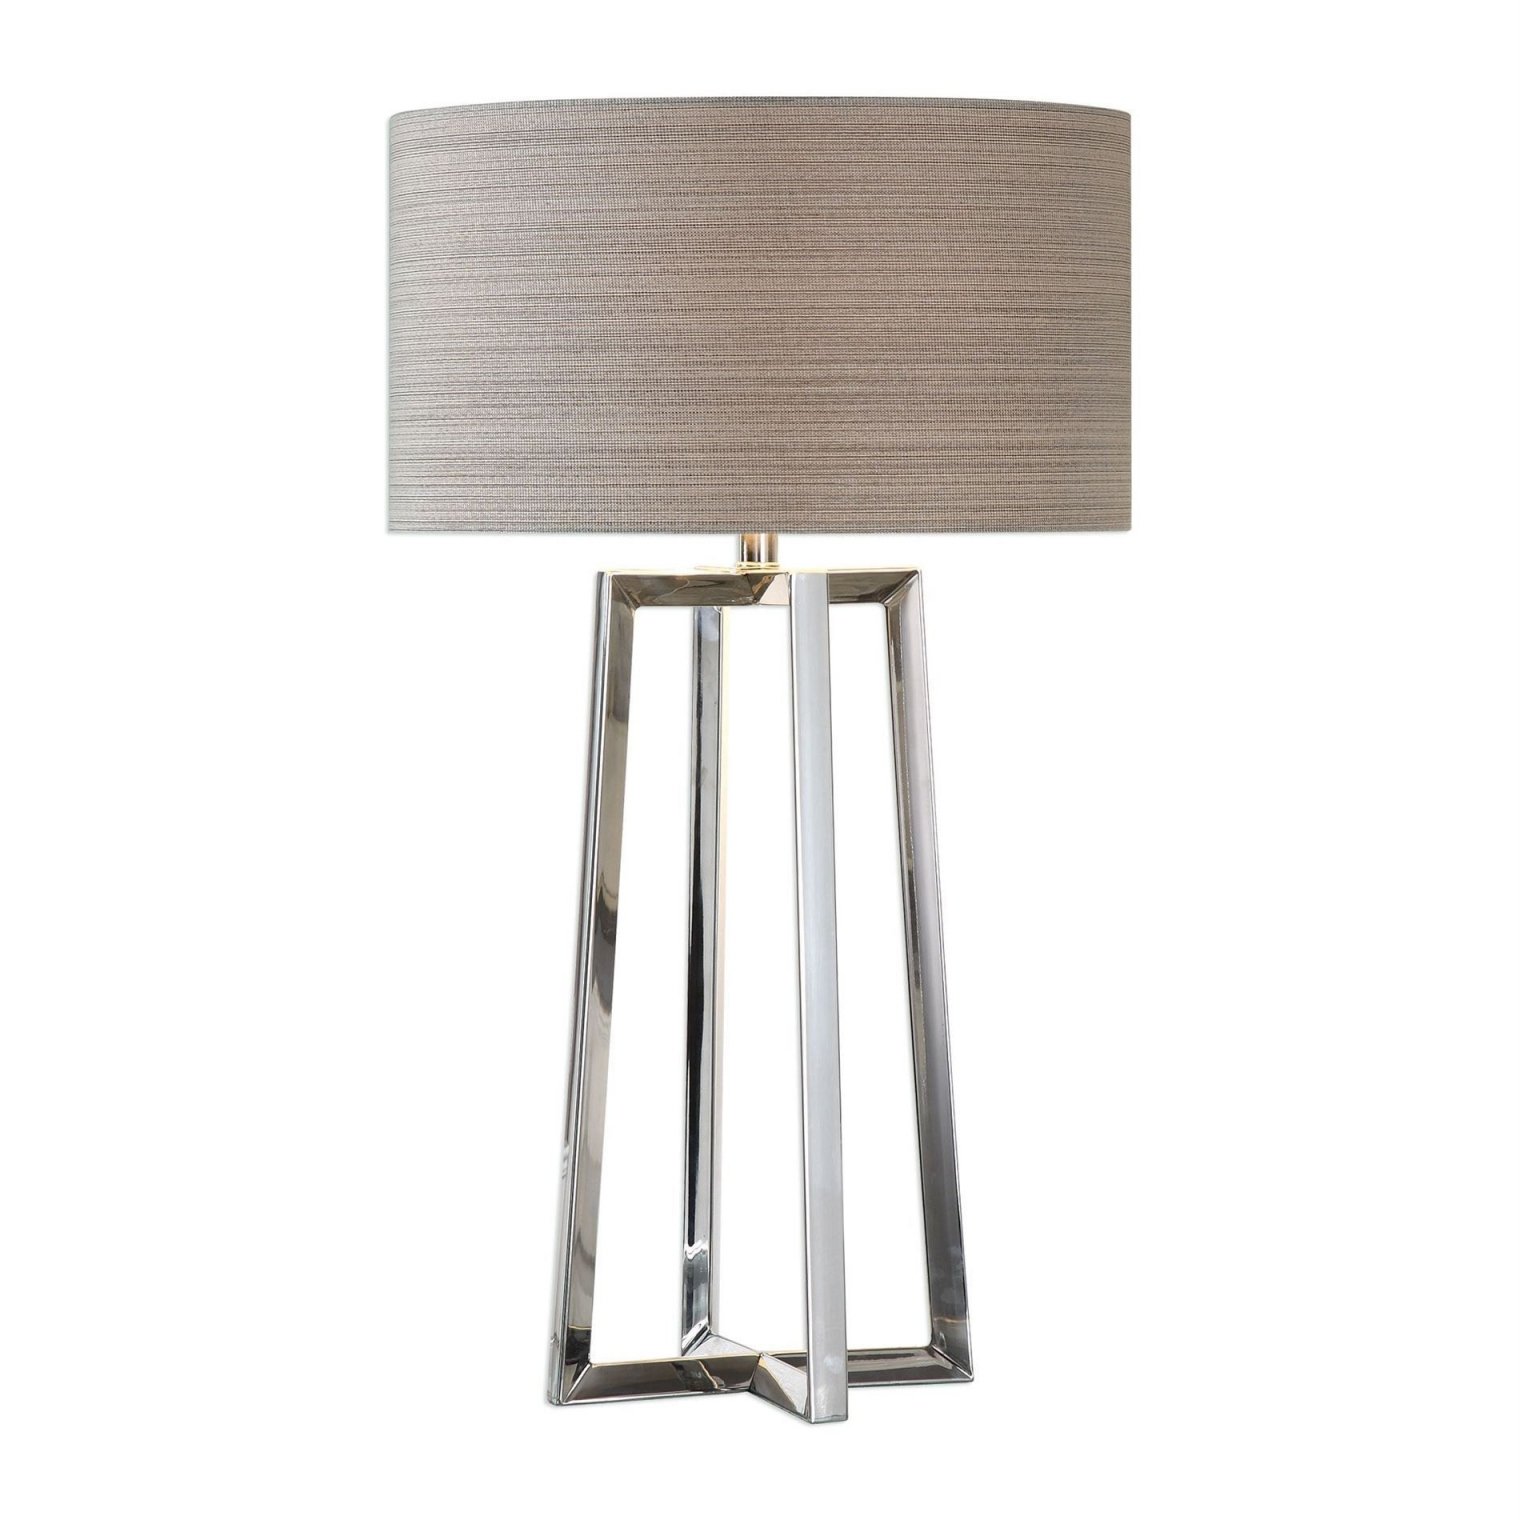 keokee contemporary stainless steel table lamp uttermost agha accent lamps vintage and chairs white gloss console lime green end magnussen pinebrook coffee red runner placemats